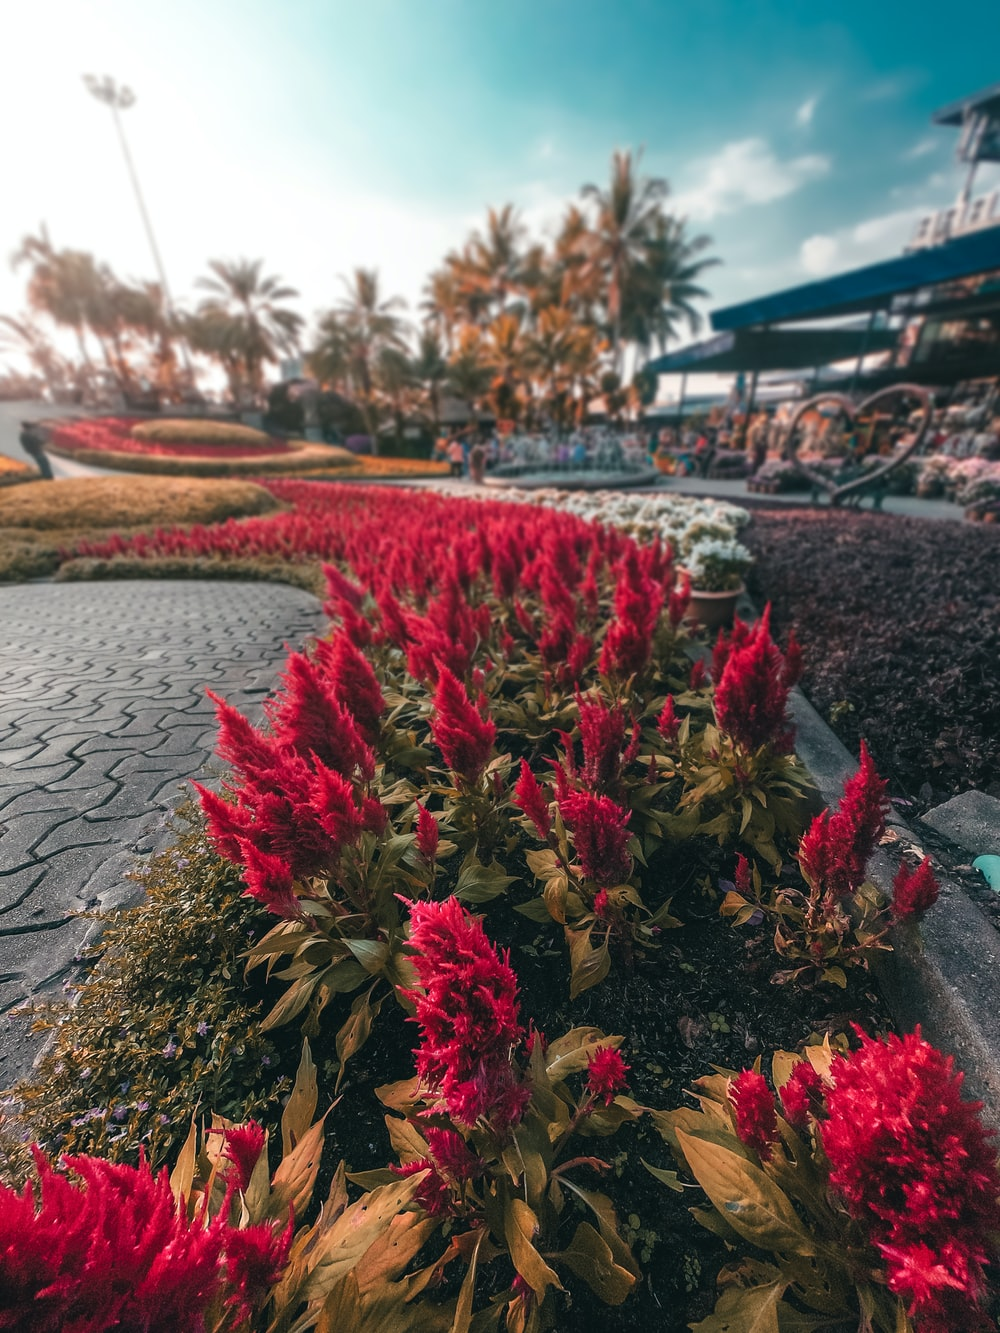 red flowers on body of water during daytime